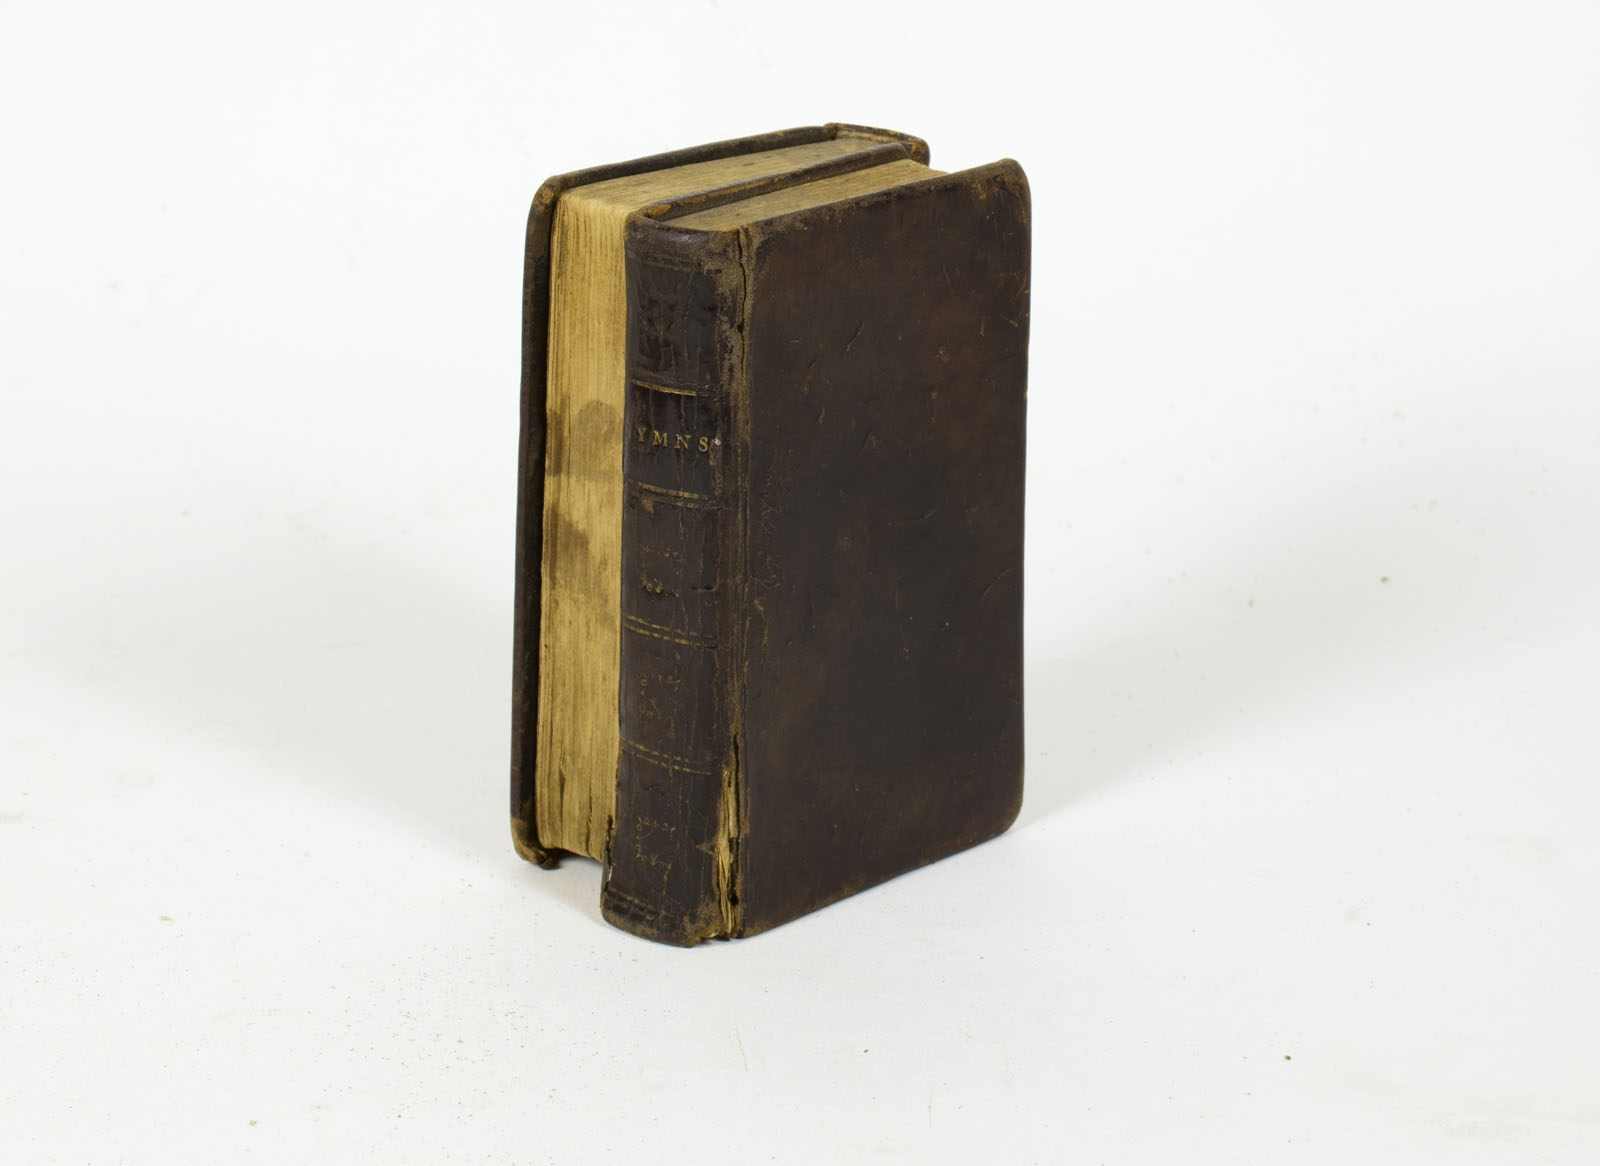 Psalms and Hymns (New York, 1810). Michael Zinman Binding Collection. During a church service, the congregant could conveniently flip back and forth between the Psalms and hymns with this dos-à-dos (back to back) binding.